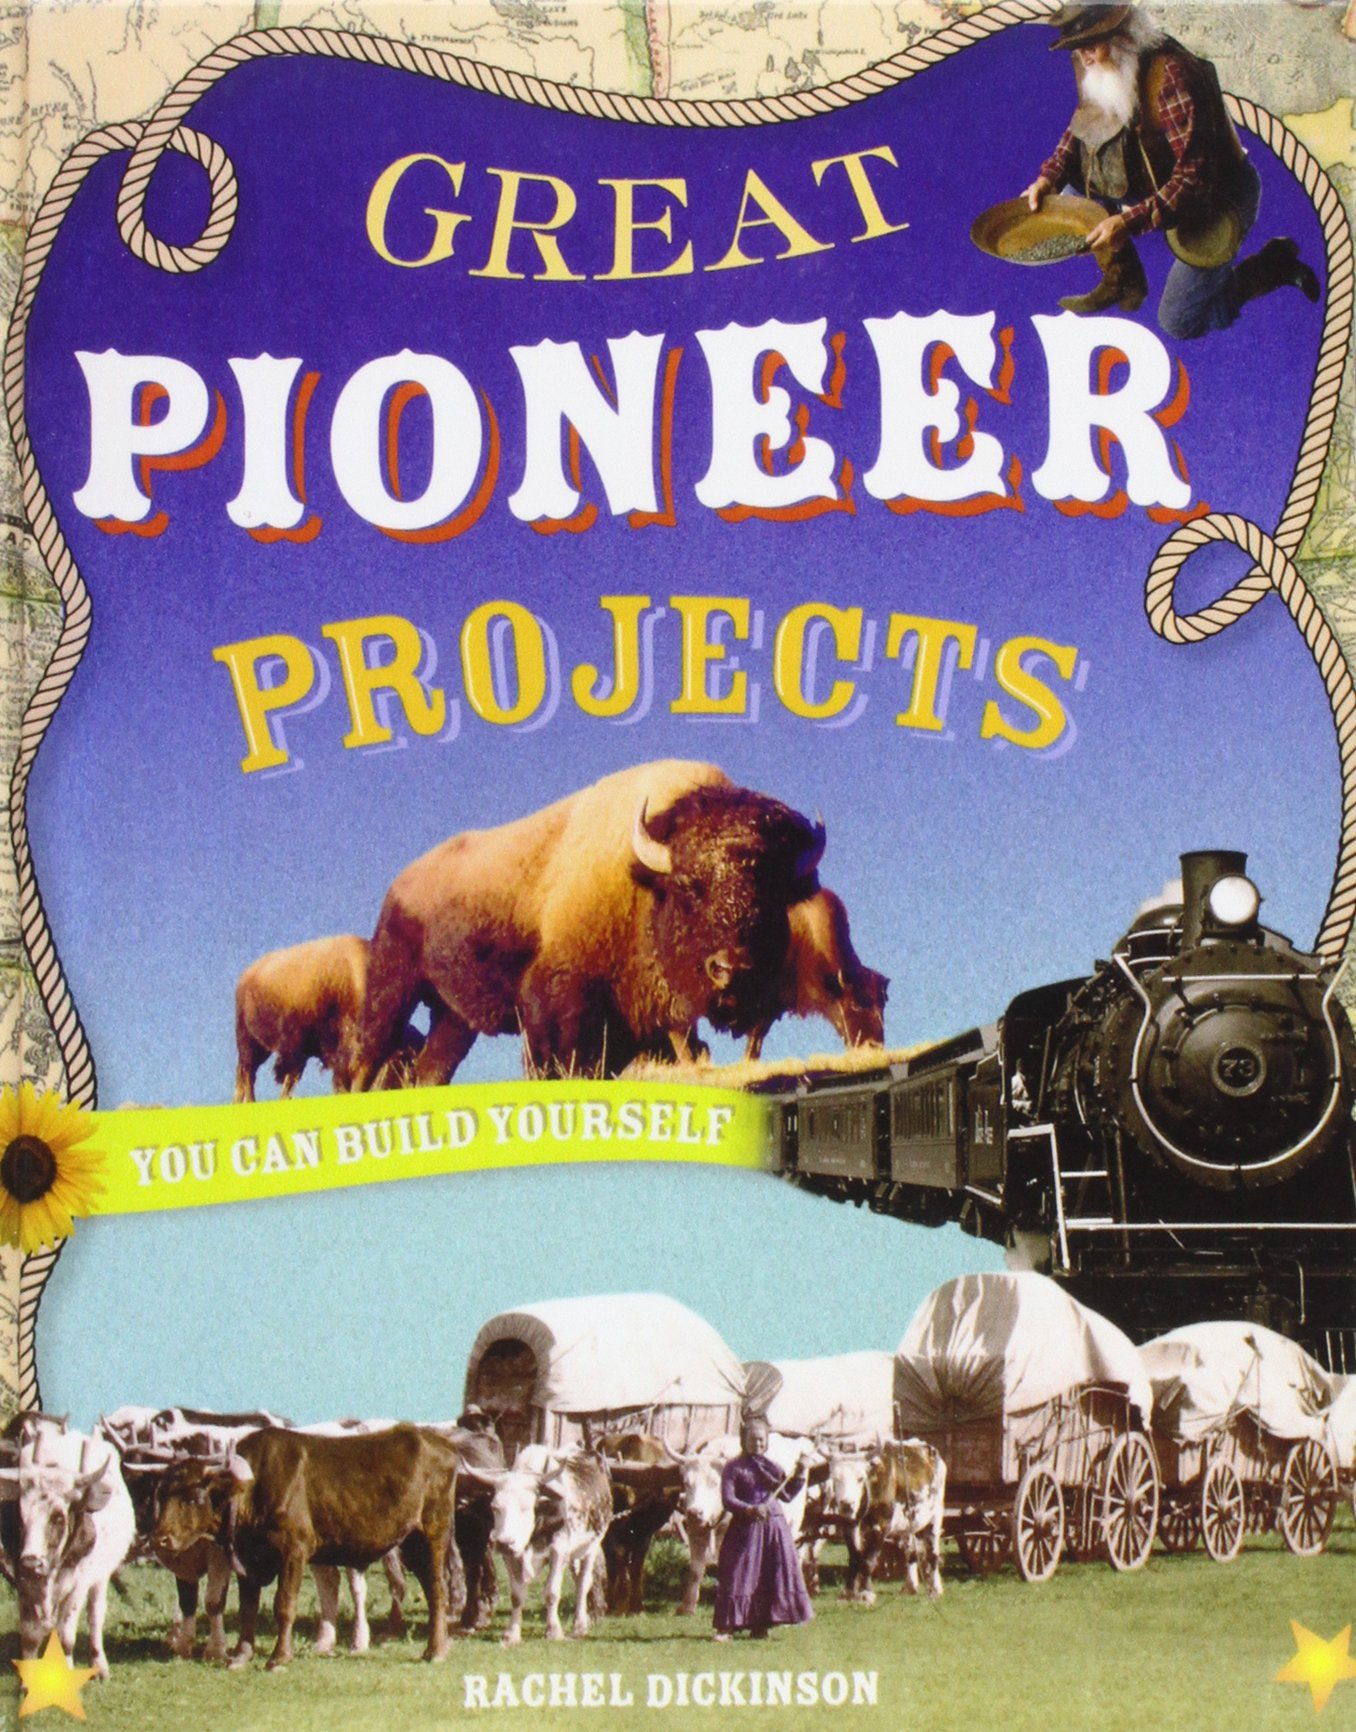 Great Pioneer Projects You Can Build Yourself (Build It Yourself Series) pdf